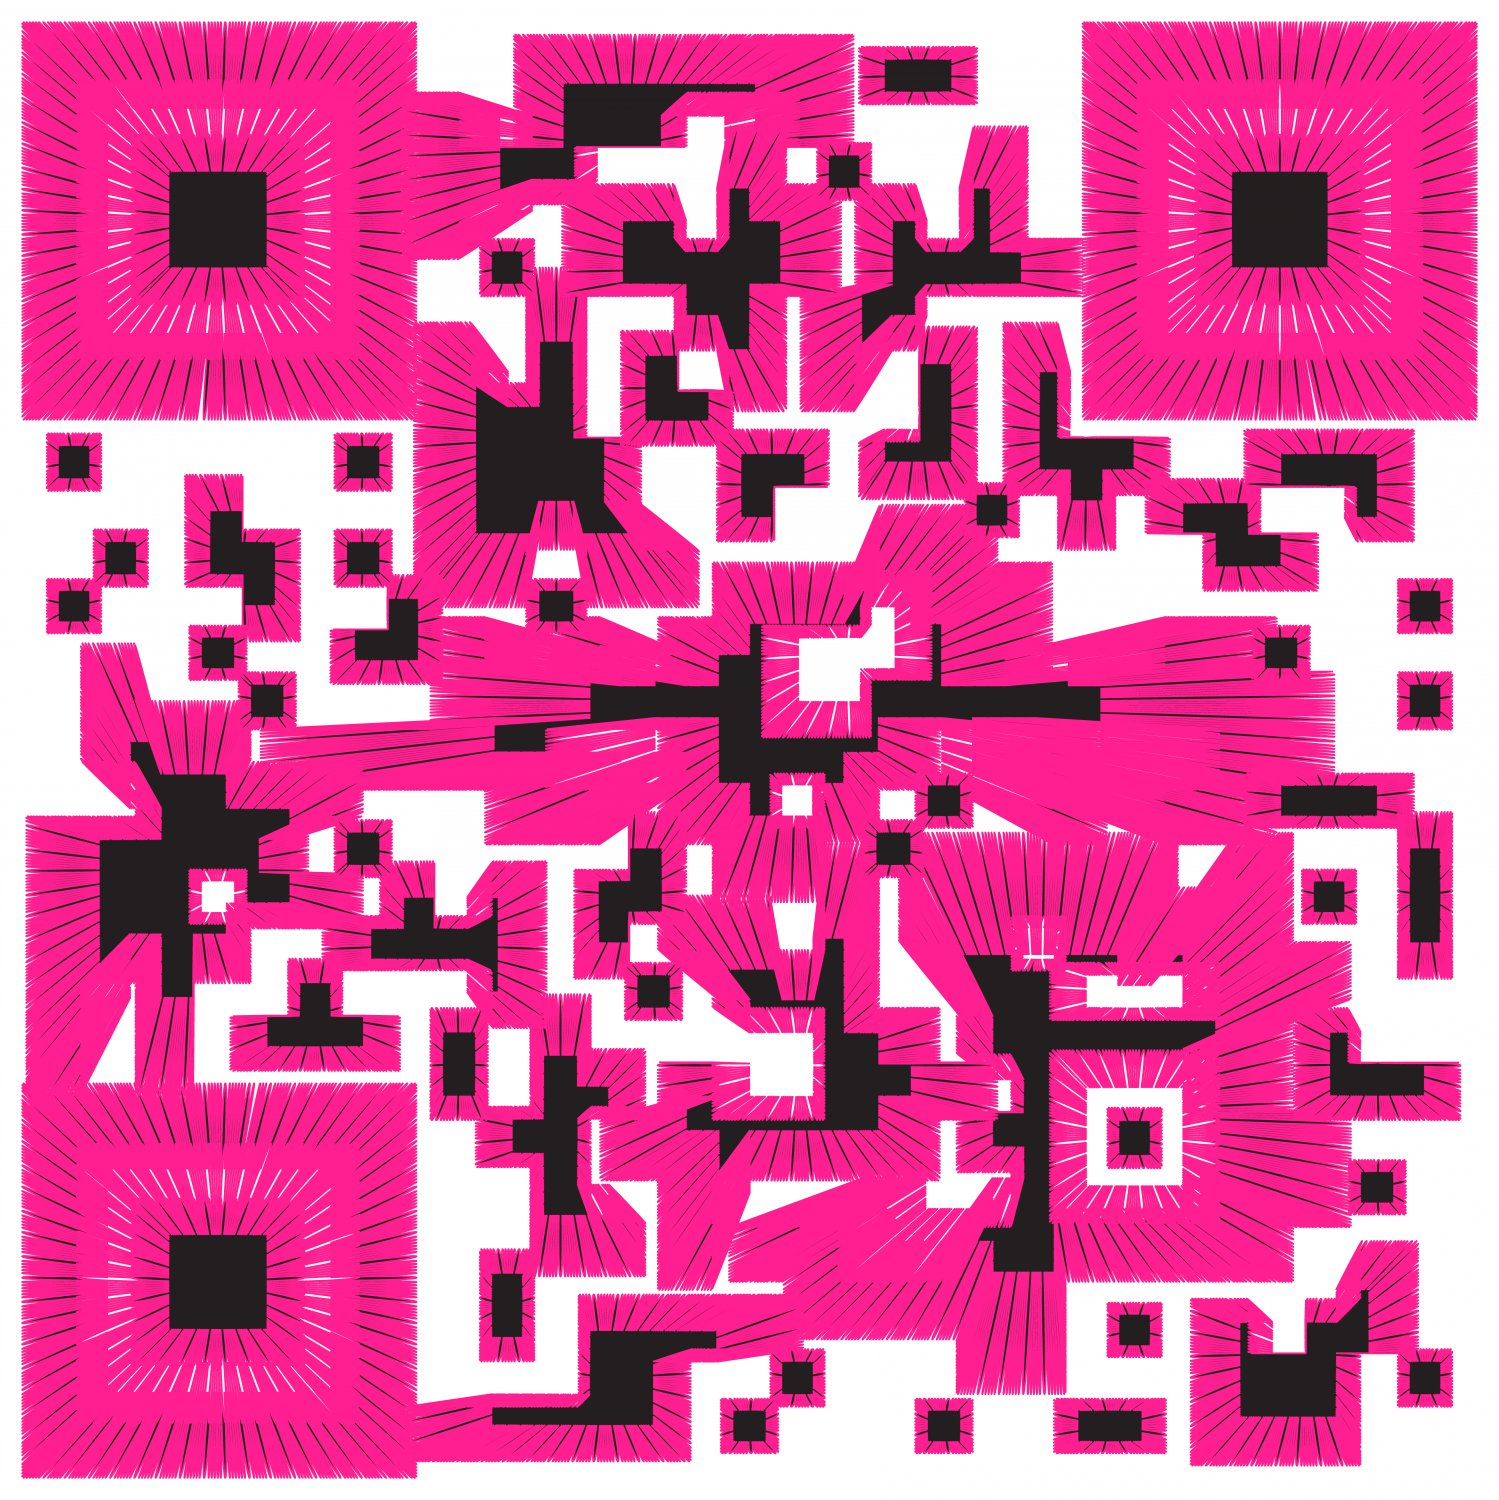 - This QR code was originally designed for marking PC boards. -  - Art and the Zen of QR Codes - QaRt - making art from QR codes. - Tony Karp, design, art, photography, techno-impressionist, techno-impressionism, aerial photography , drone , drones , dji , mavic pro , video , 3D printing - Books -